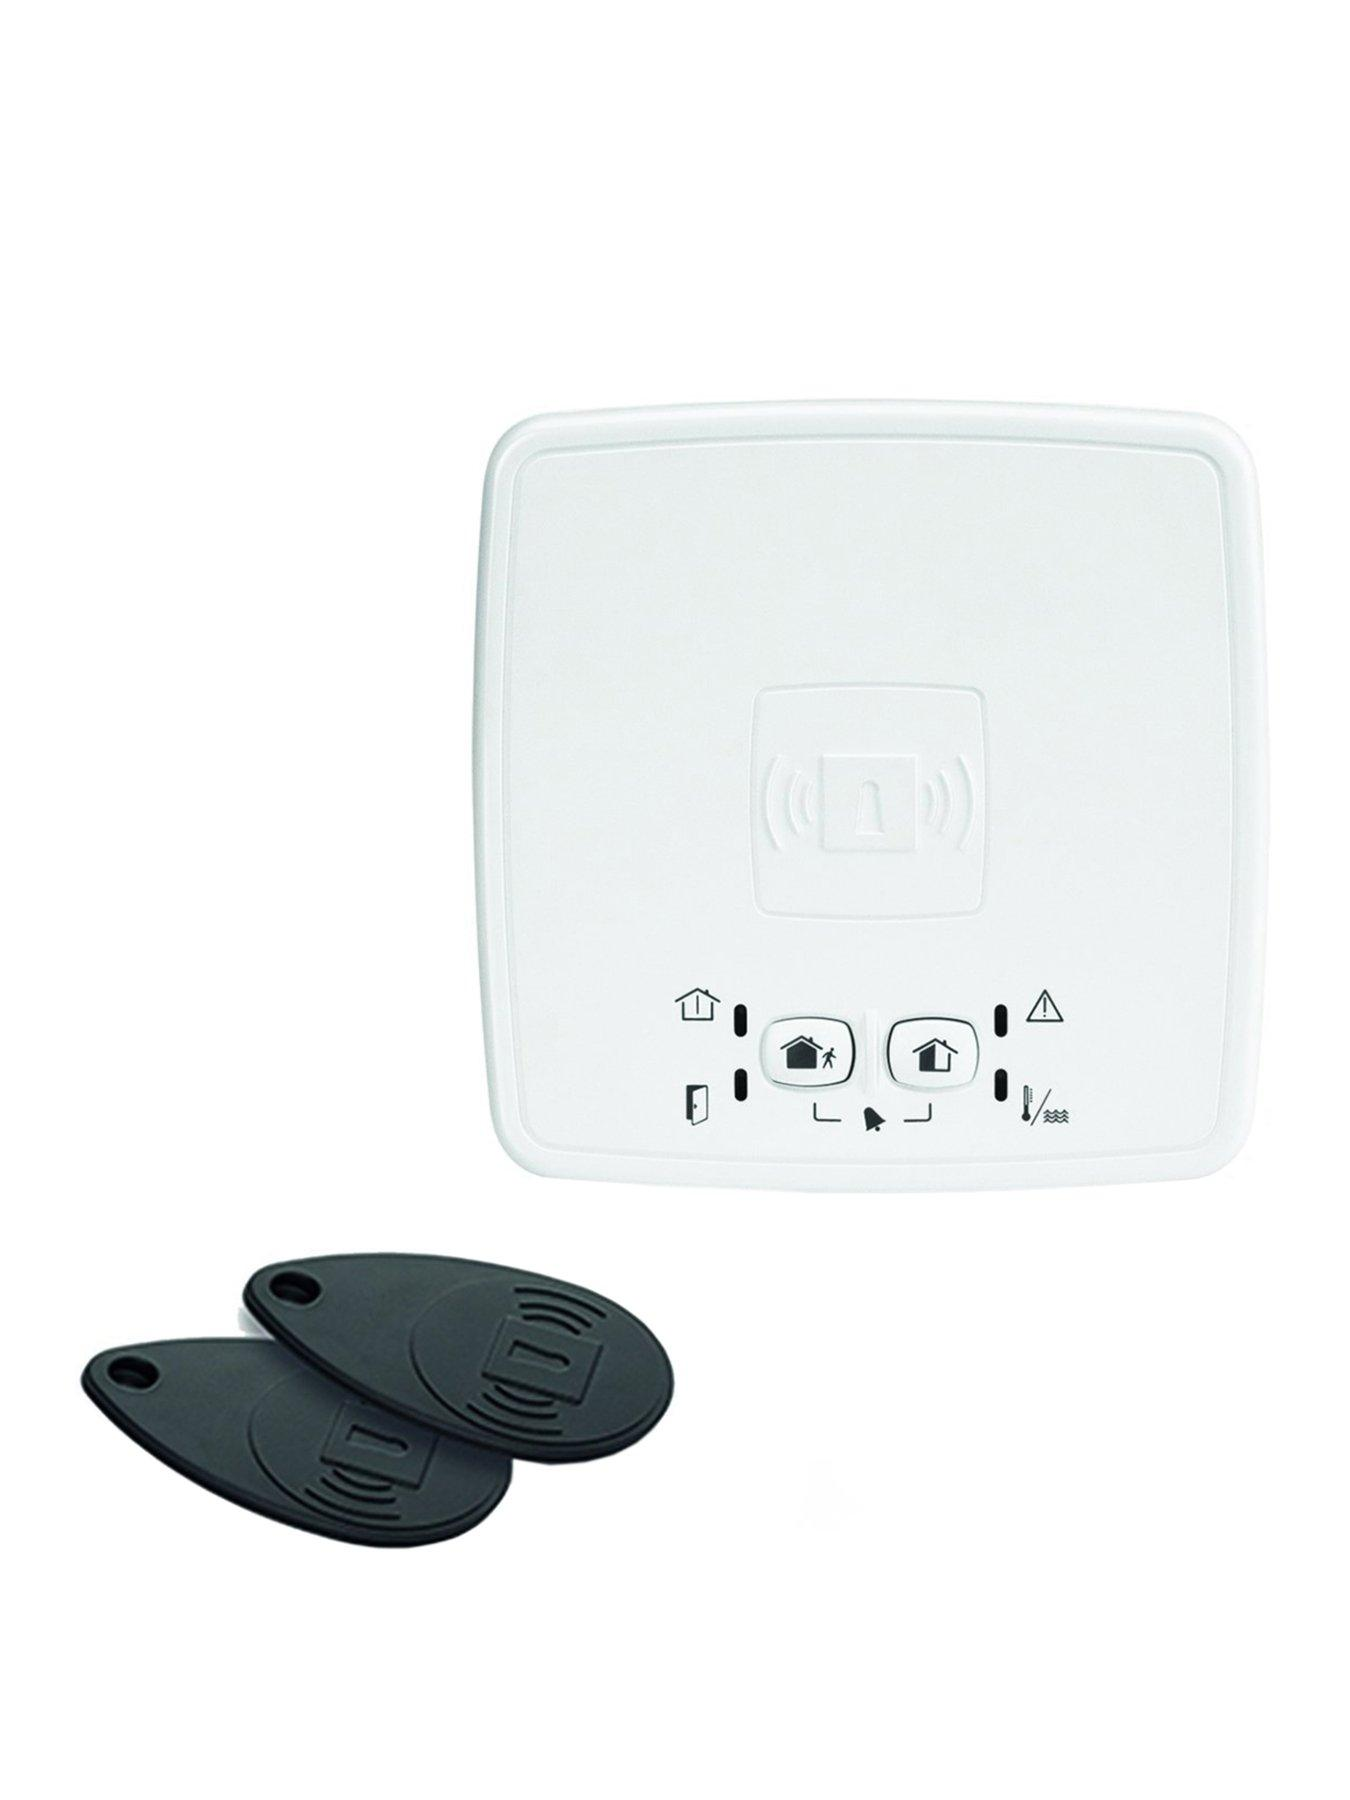 Compare prices for Honeywell Evo Contactless Tag Reader